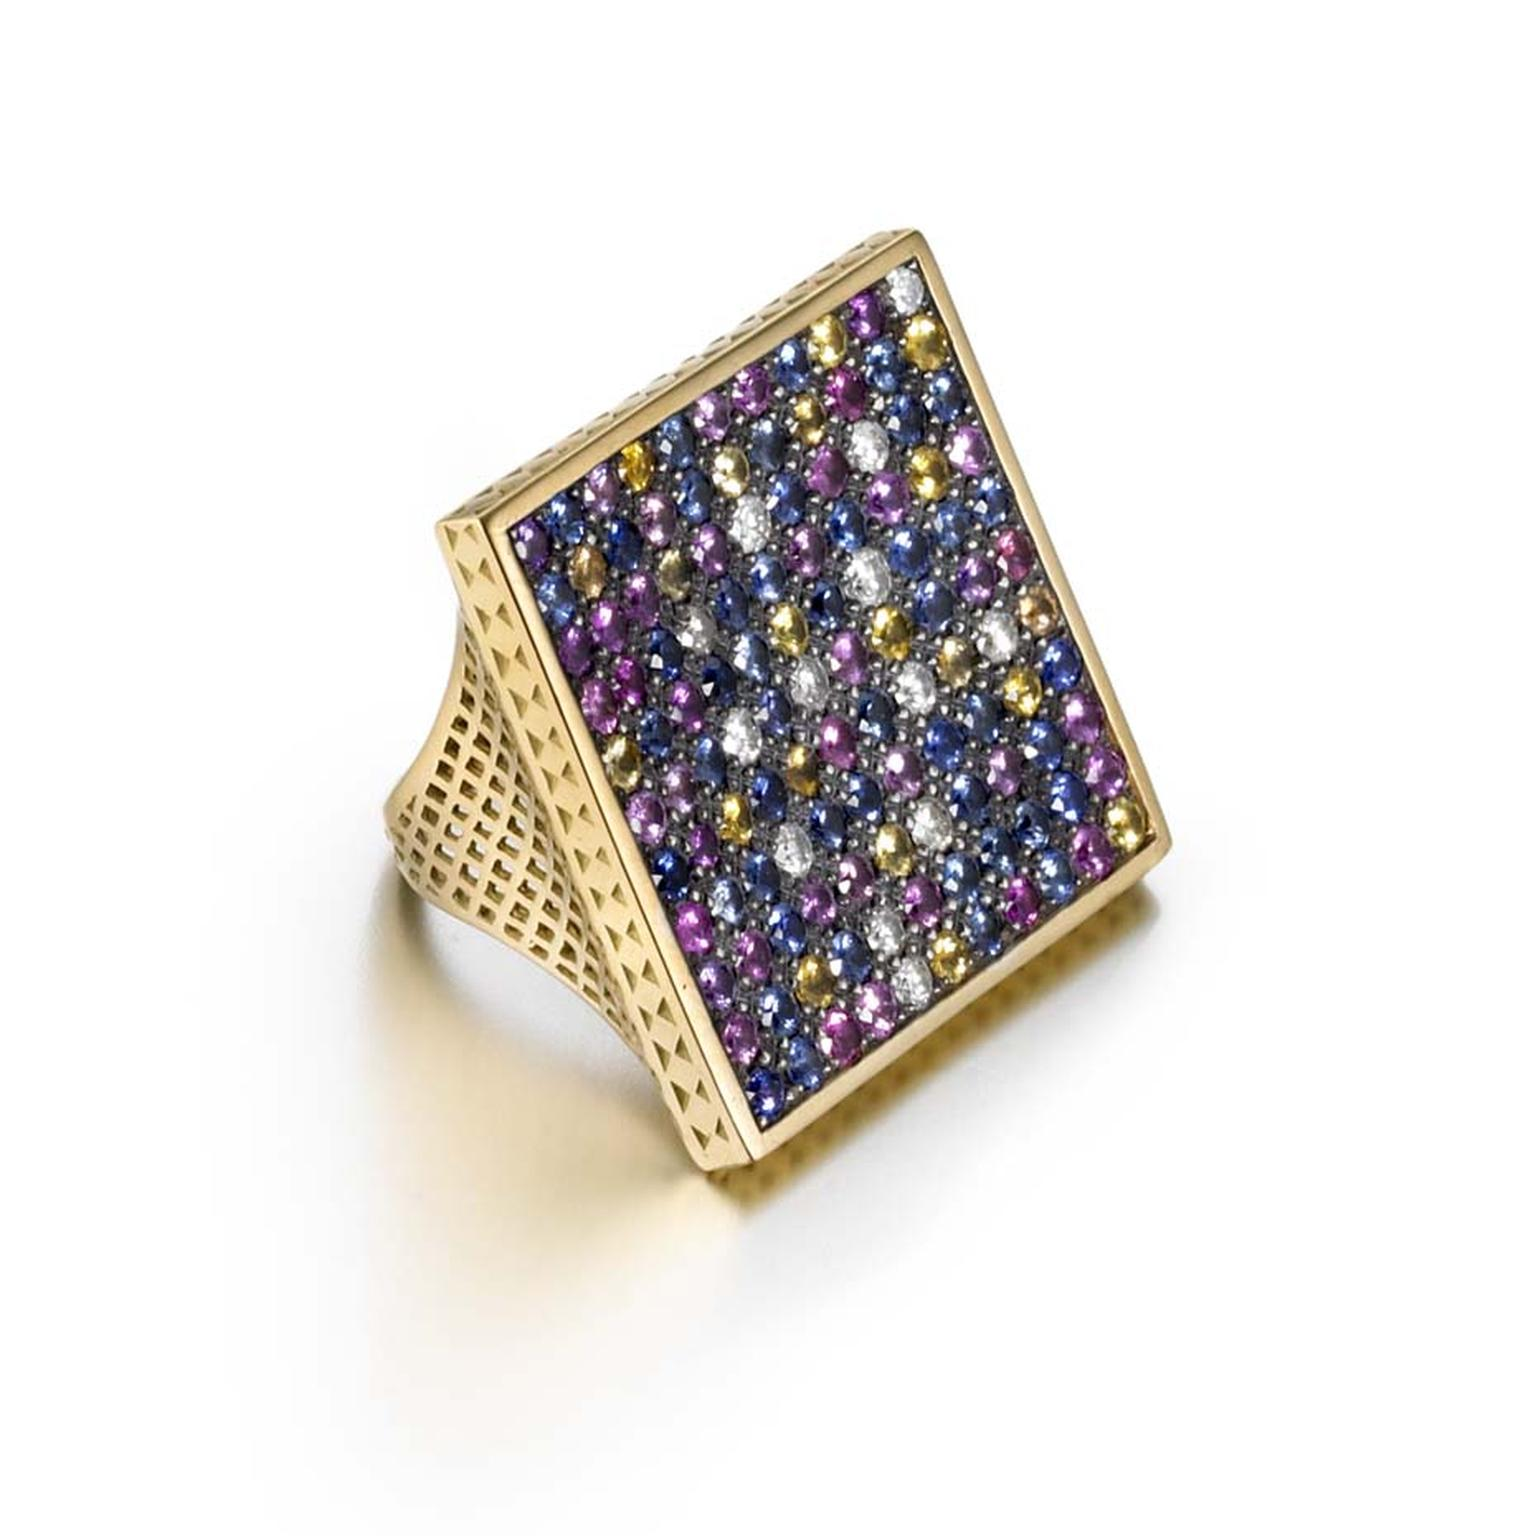 Ray Griffiths one-of-a-kind yellow gold square crownwork Disco ring with pavé diamonds and 6.30ct of multi-colored sapphires set in oxidized silver.